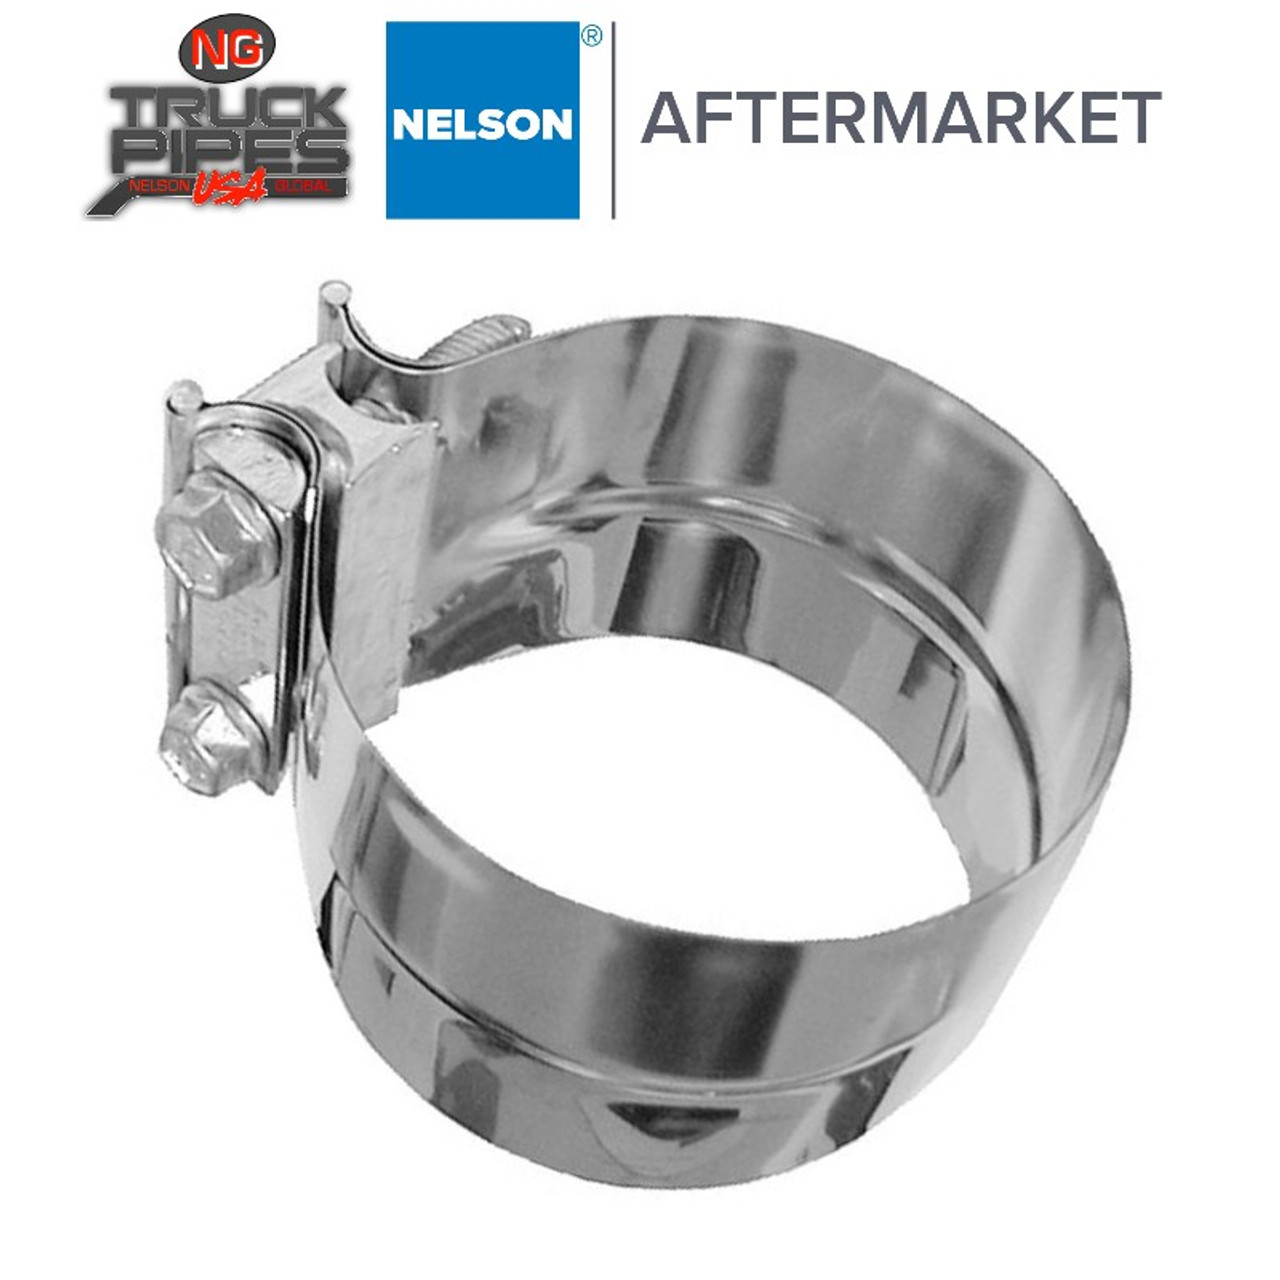 """6"""" Torctite Preformed Lap Joint Clamp Polished Stainless Steel Nelson 90554K"""